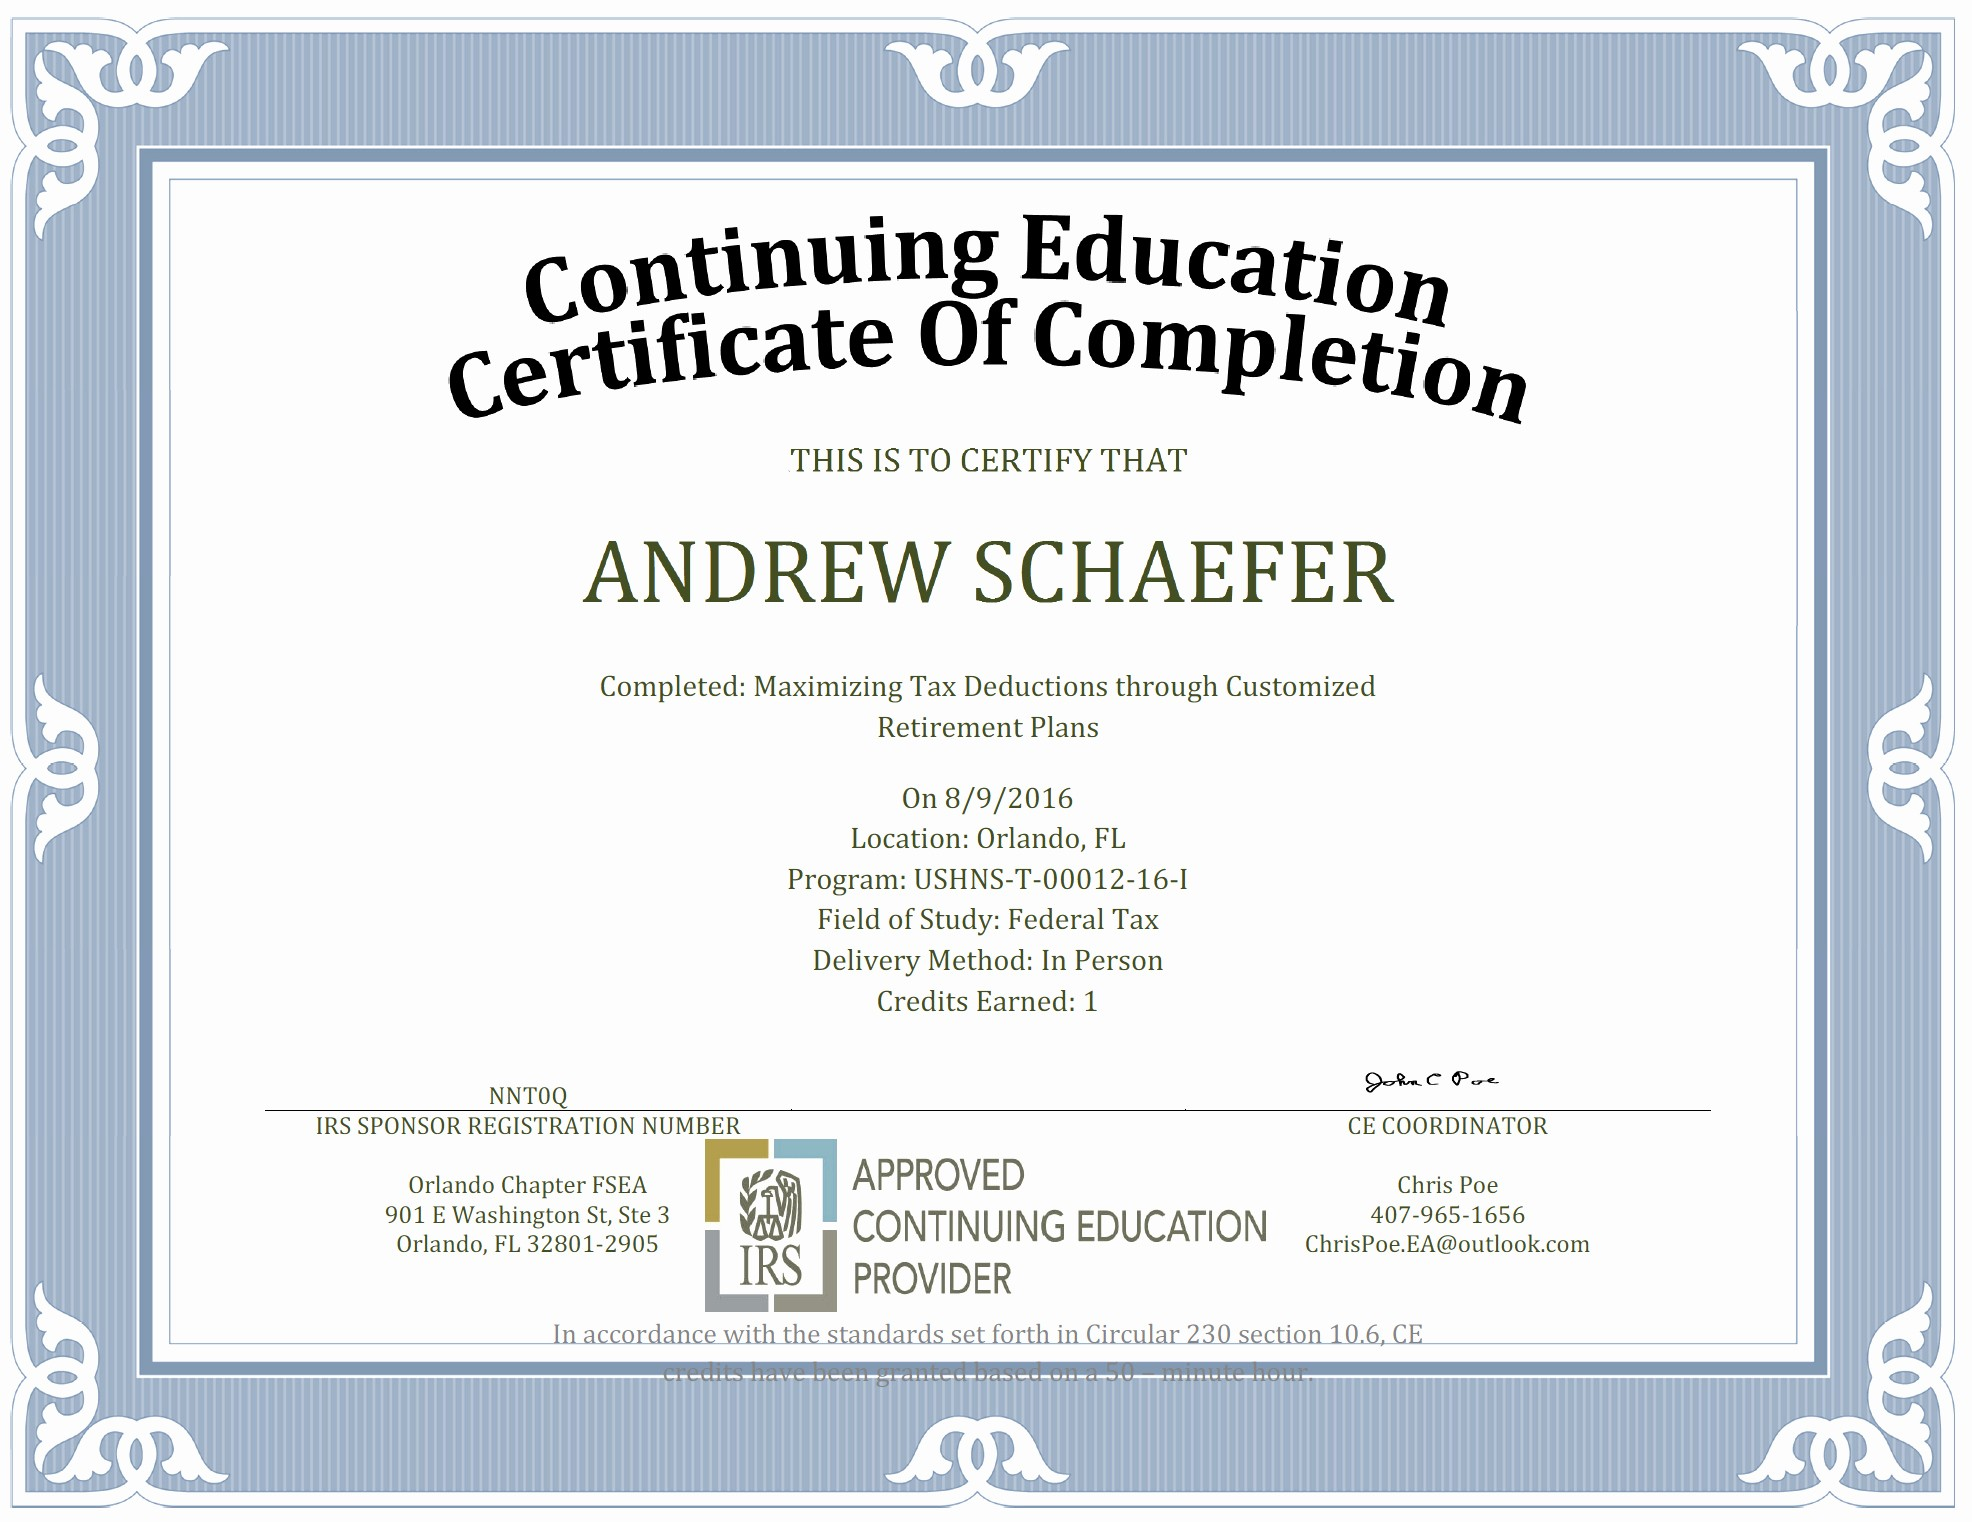 Continuing Education Certificate Template Free Elegant Ceu Certificate Pletion Template Reeviewer